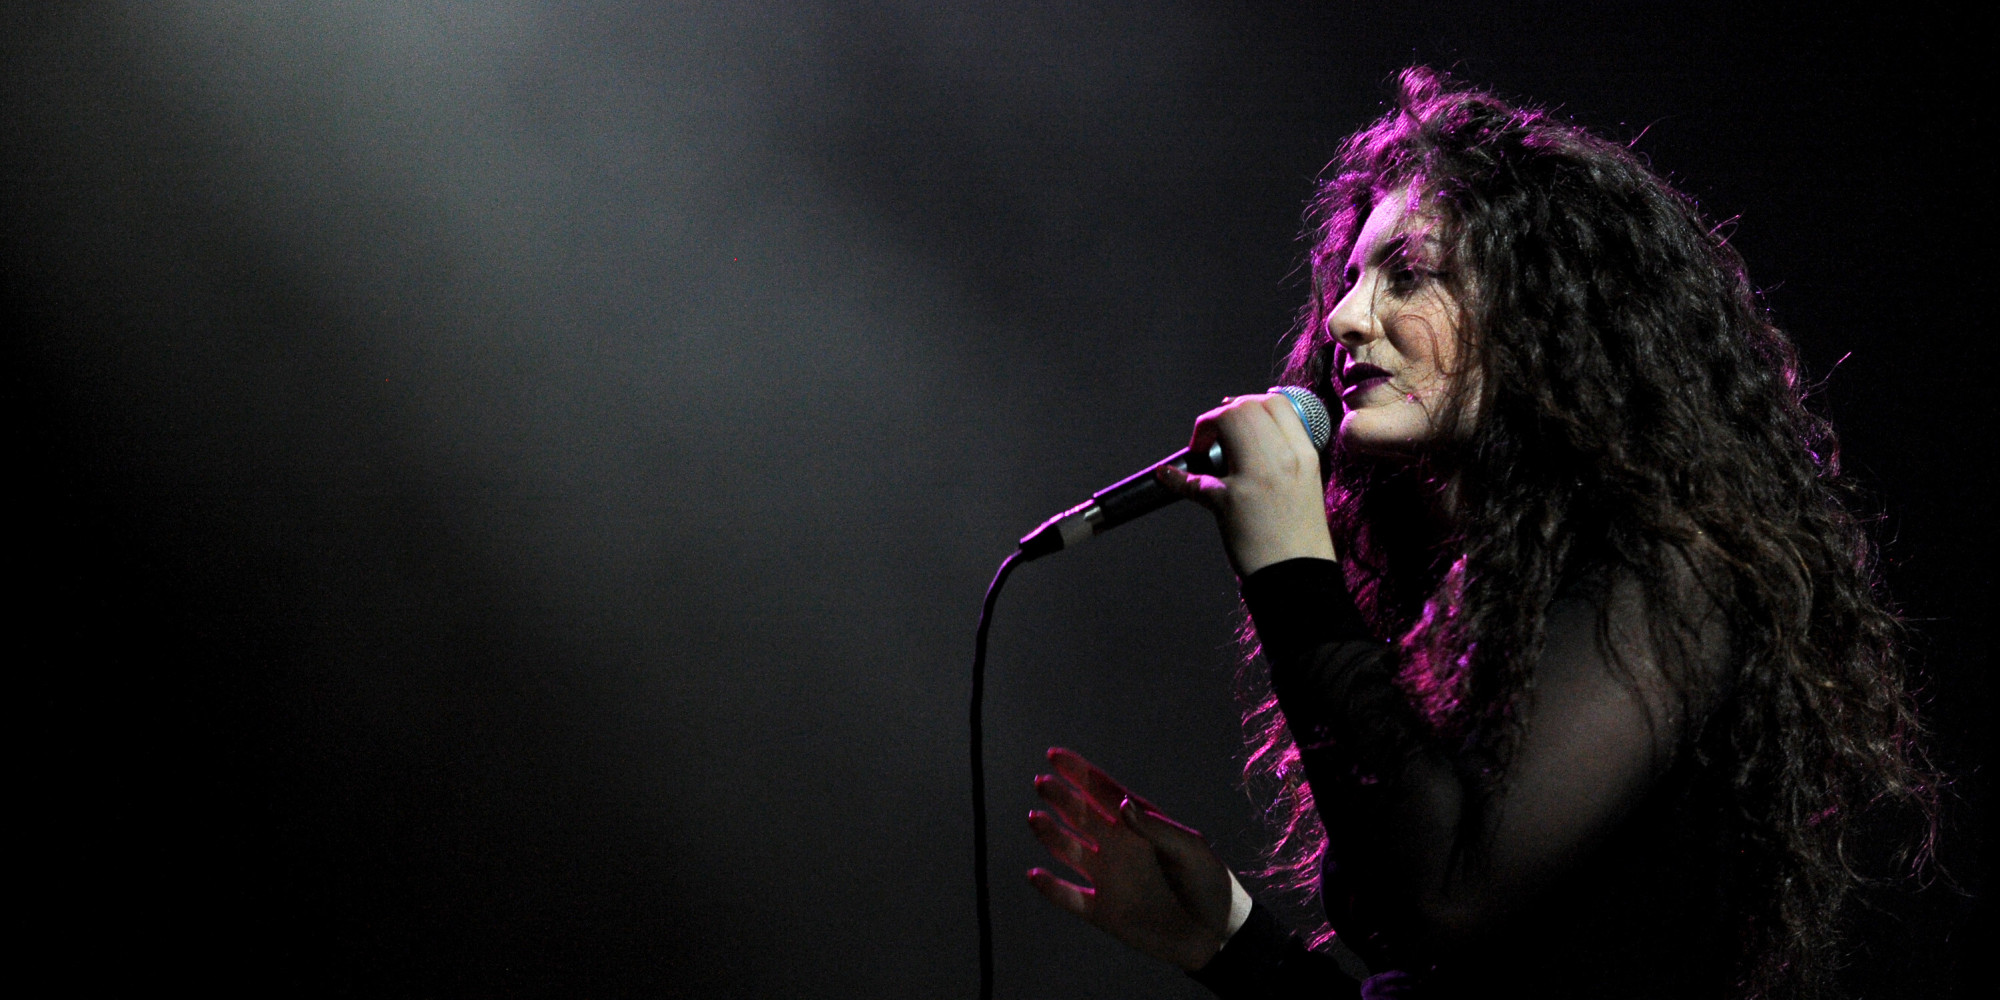 Lorde Talks With Fans During Reddit AMA | HuffPost